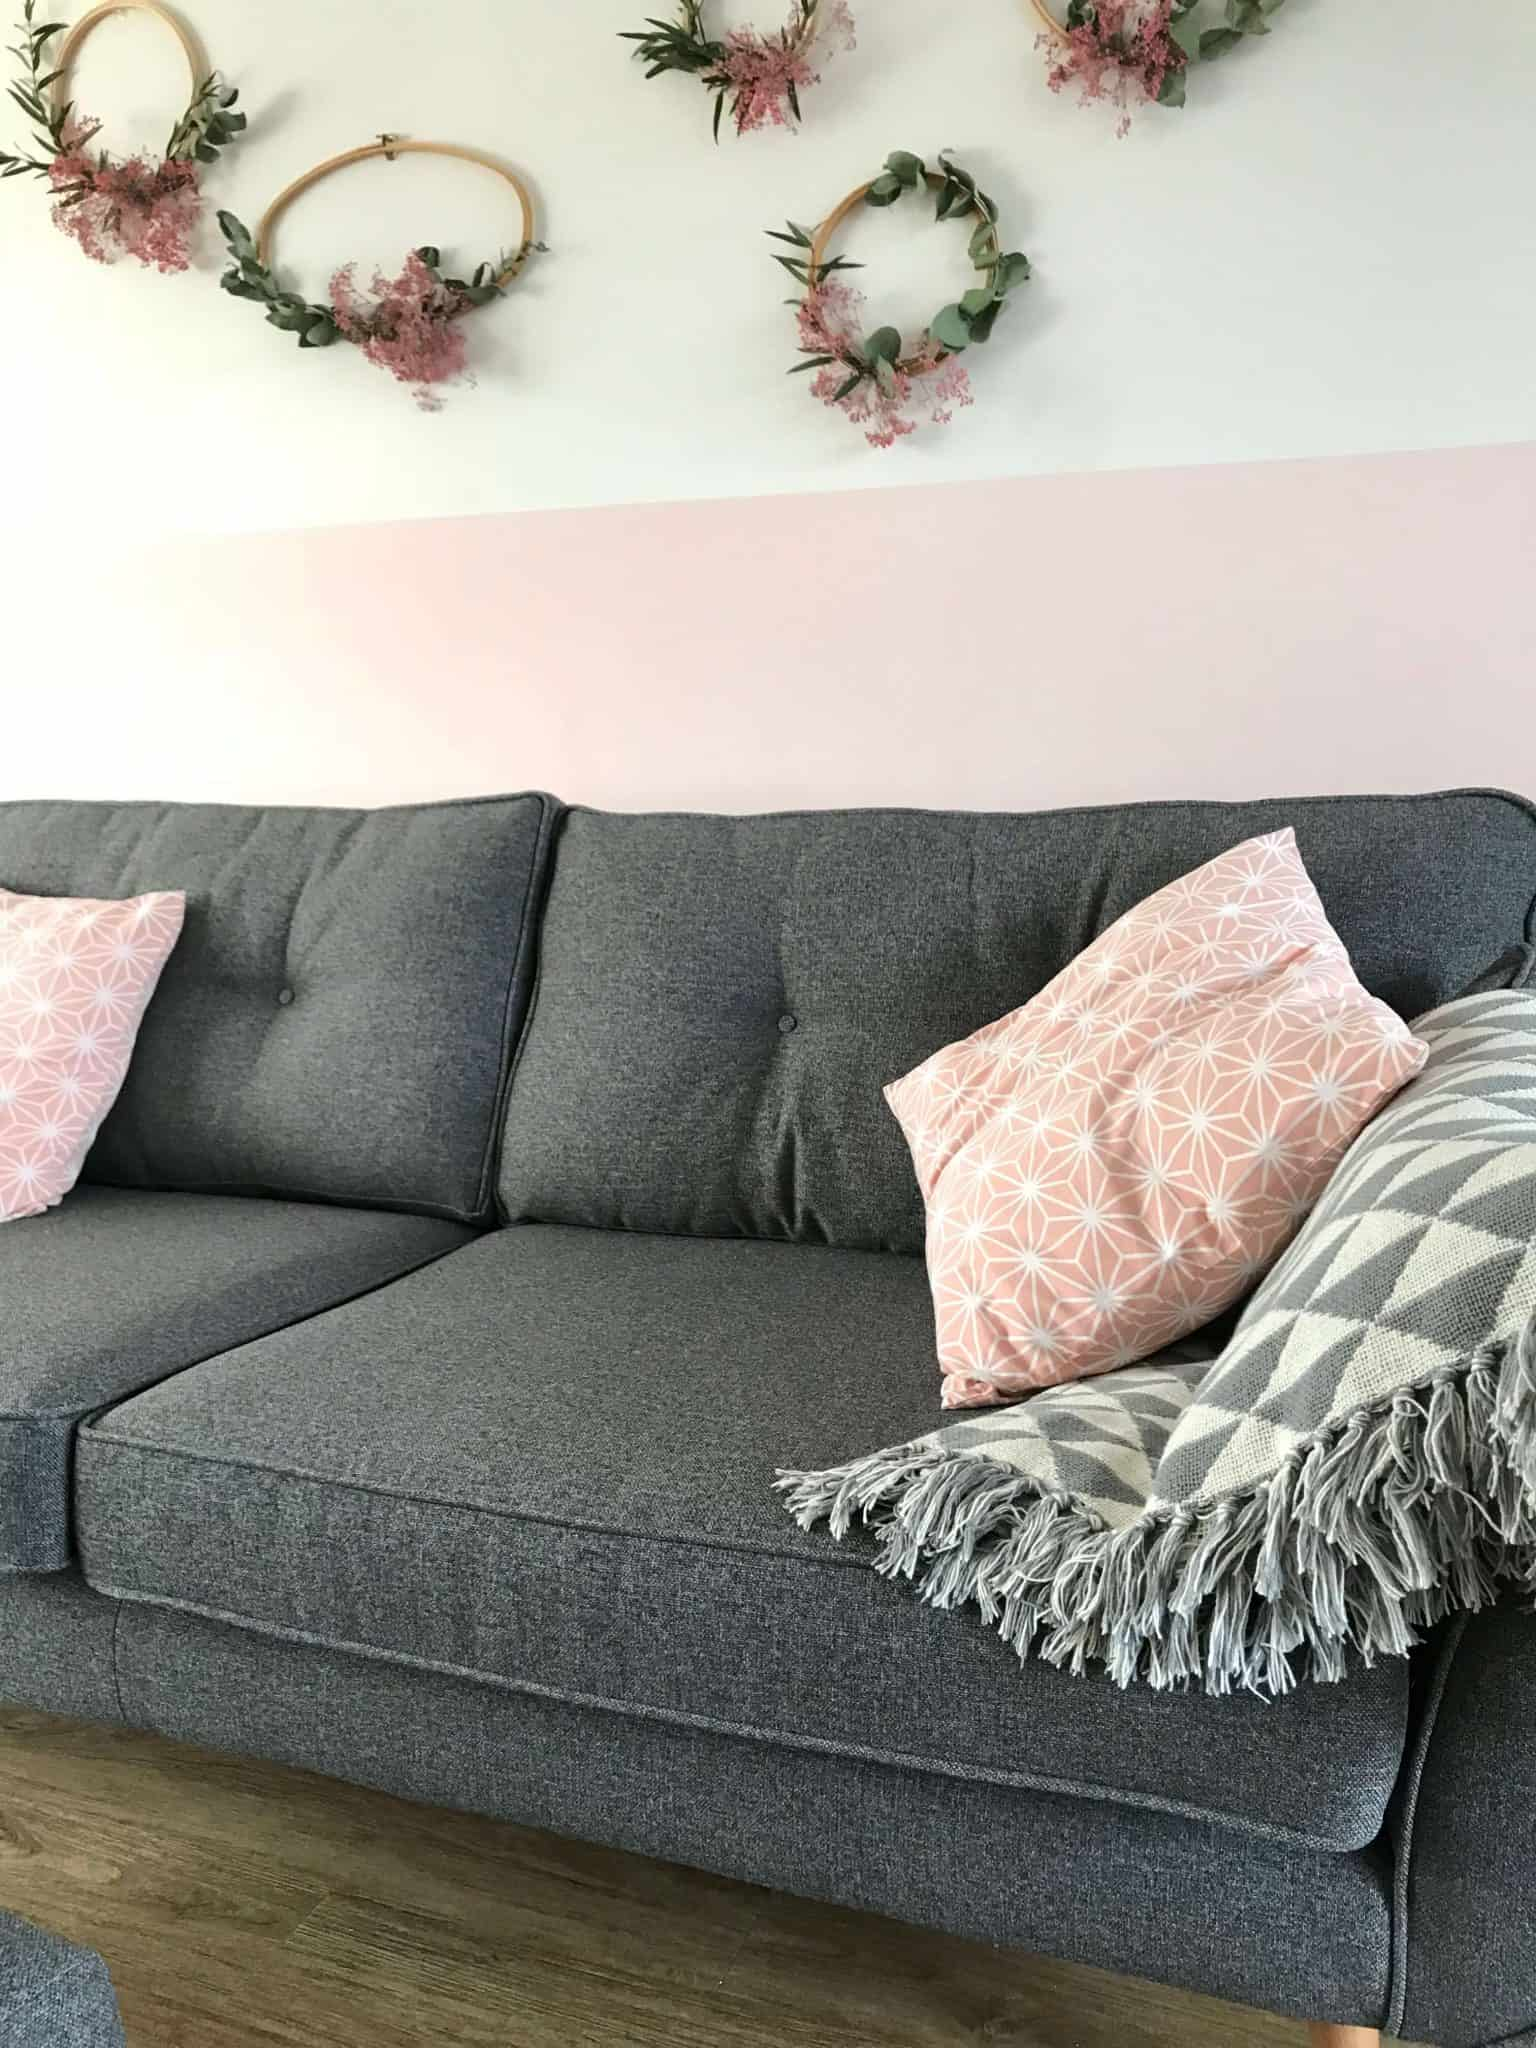 Charcoal Zinc DFS sofa with pink cushions and blanket